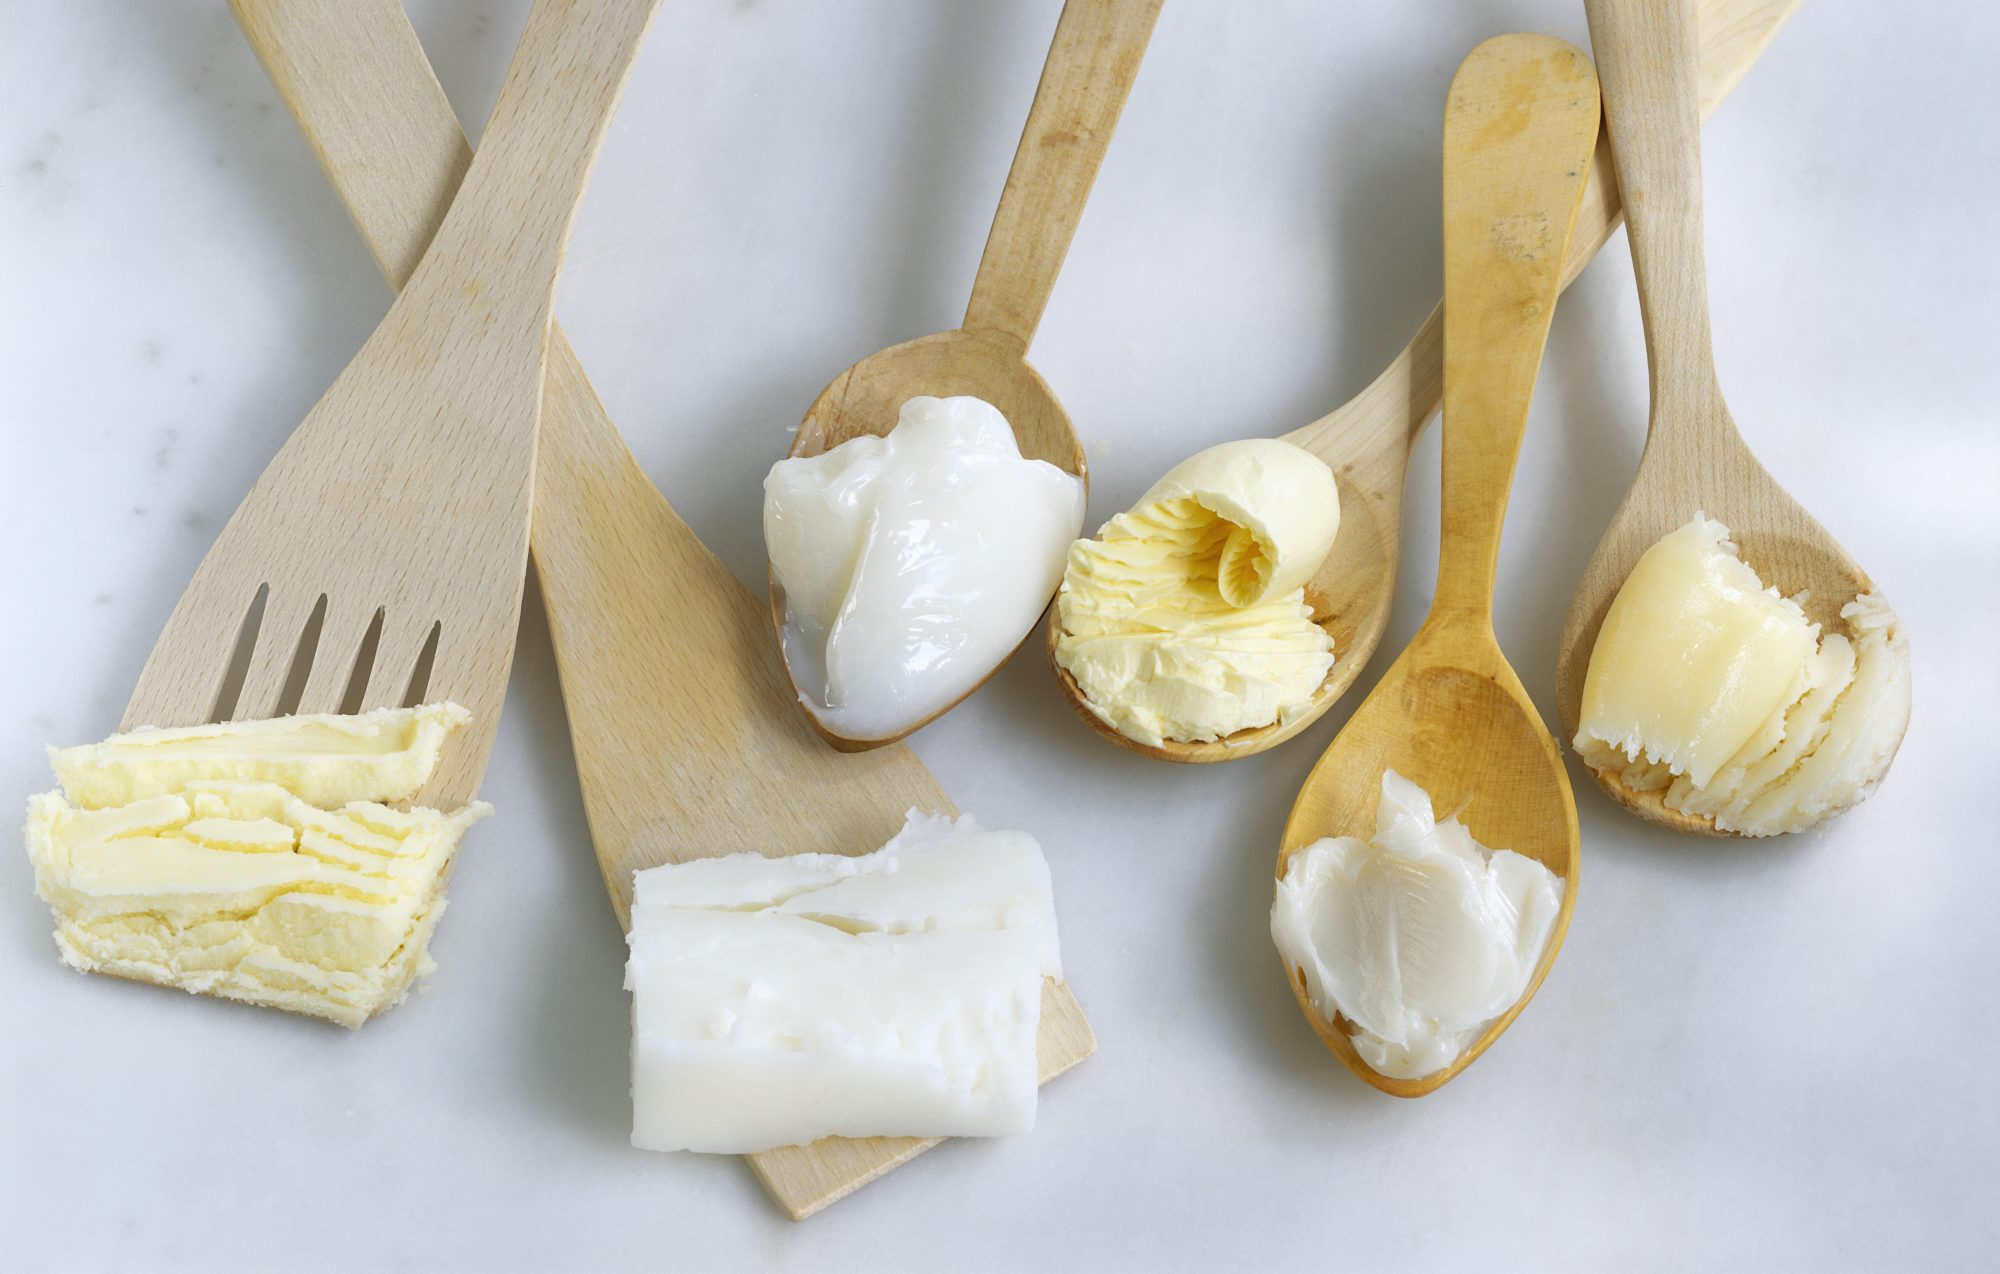 different types of butter on wooden spoons